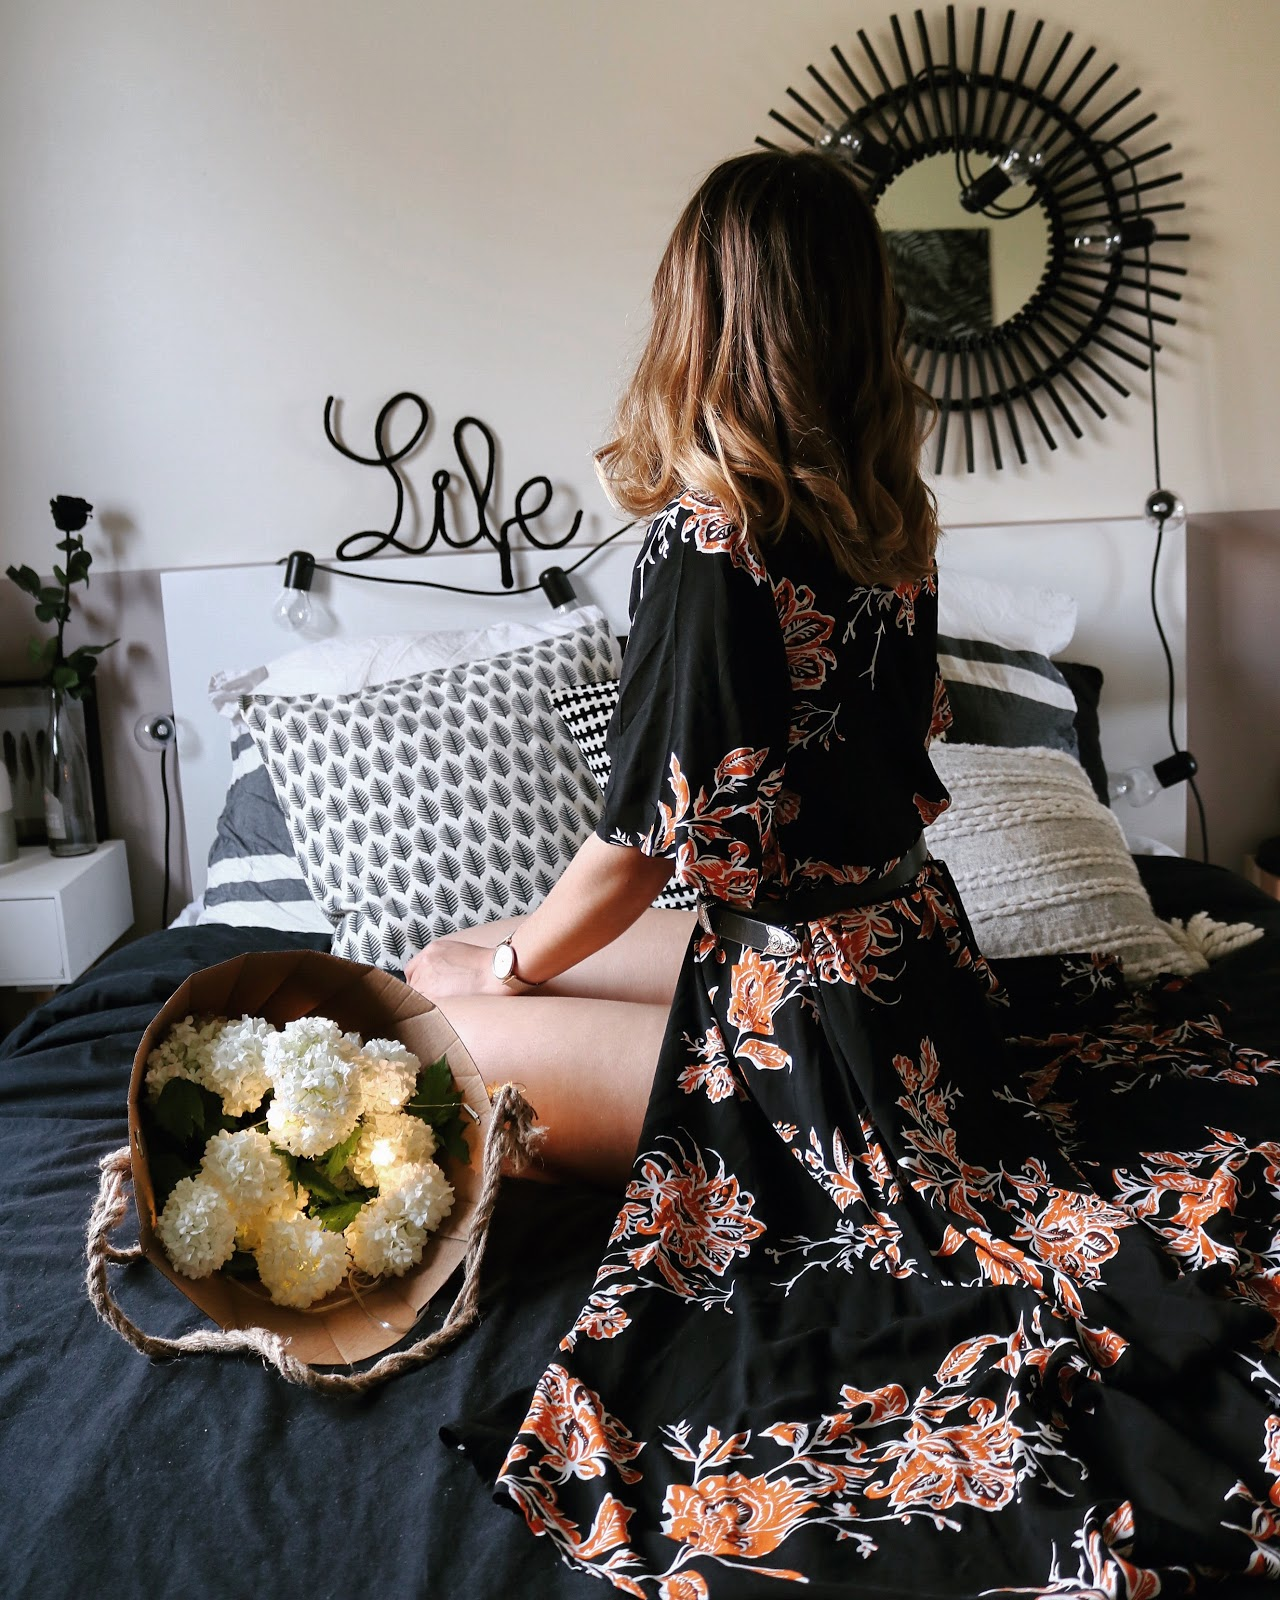 pauline-dress-blog-mode-deco-lifestyle-flowers-long-dress-fete-des-meres-idees-cadeaux-shein-asos-parfum-make-up-bed-room-home-blogger-besancon